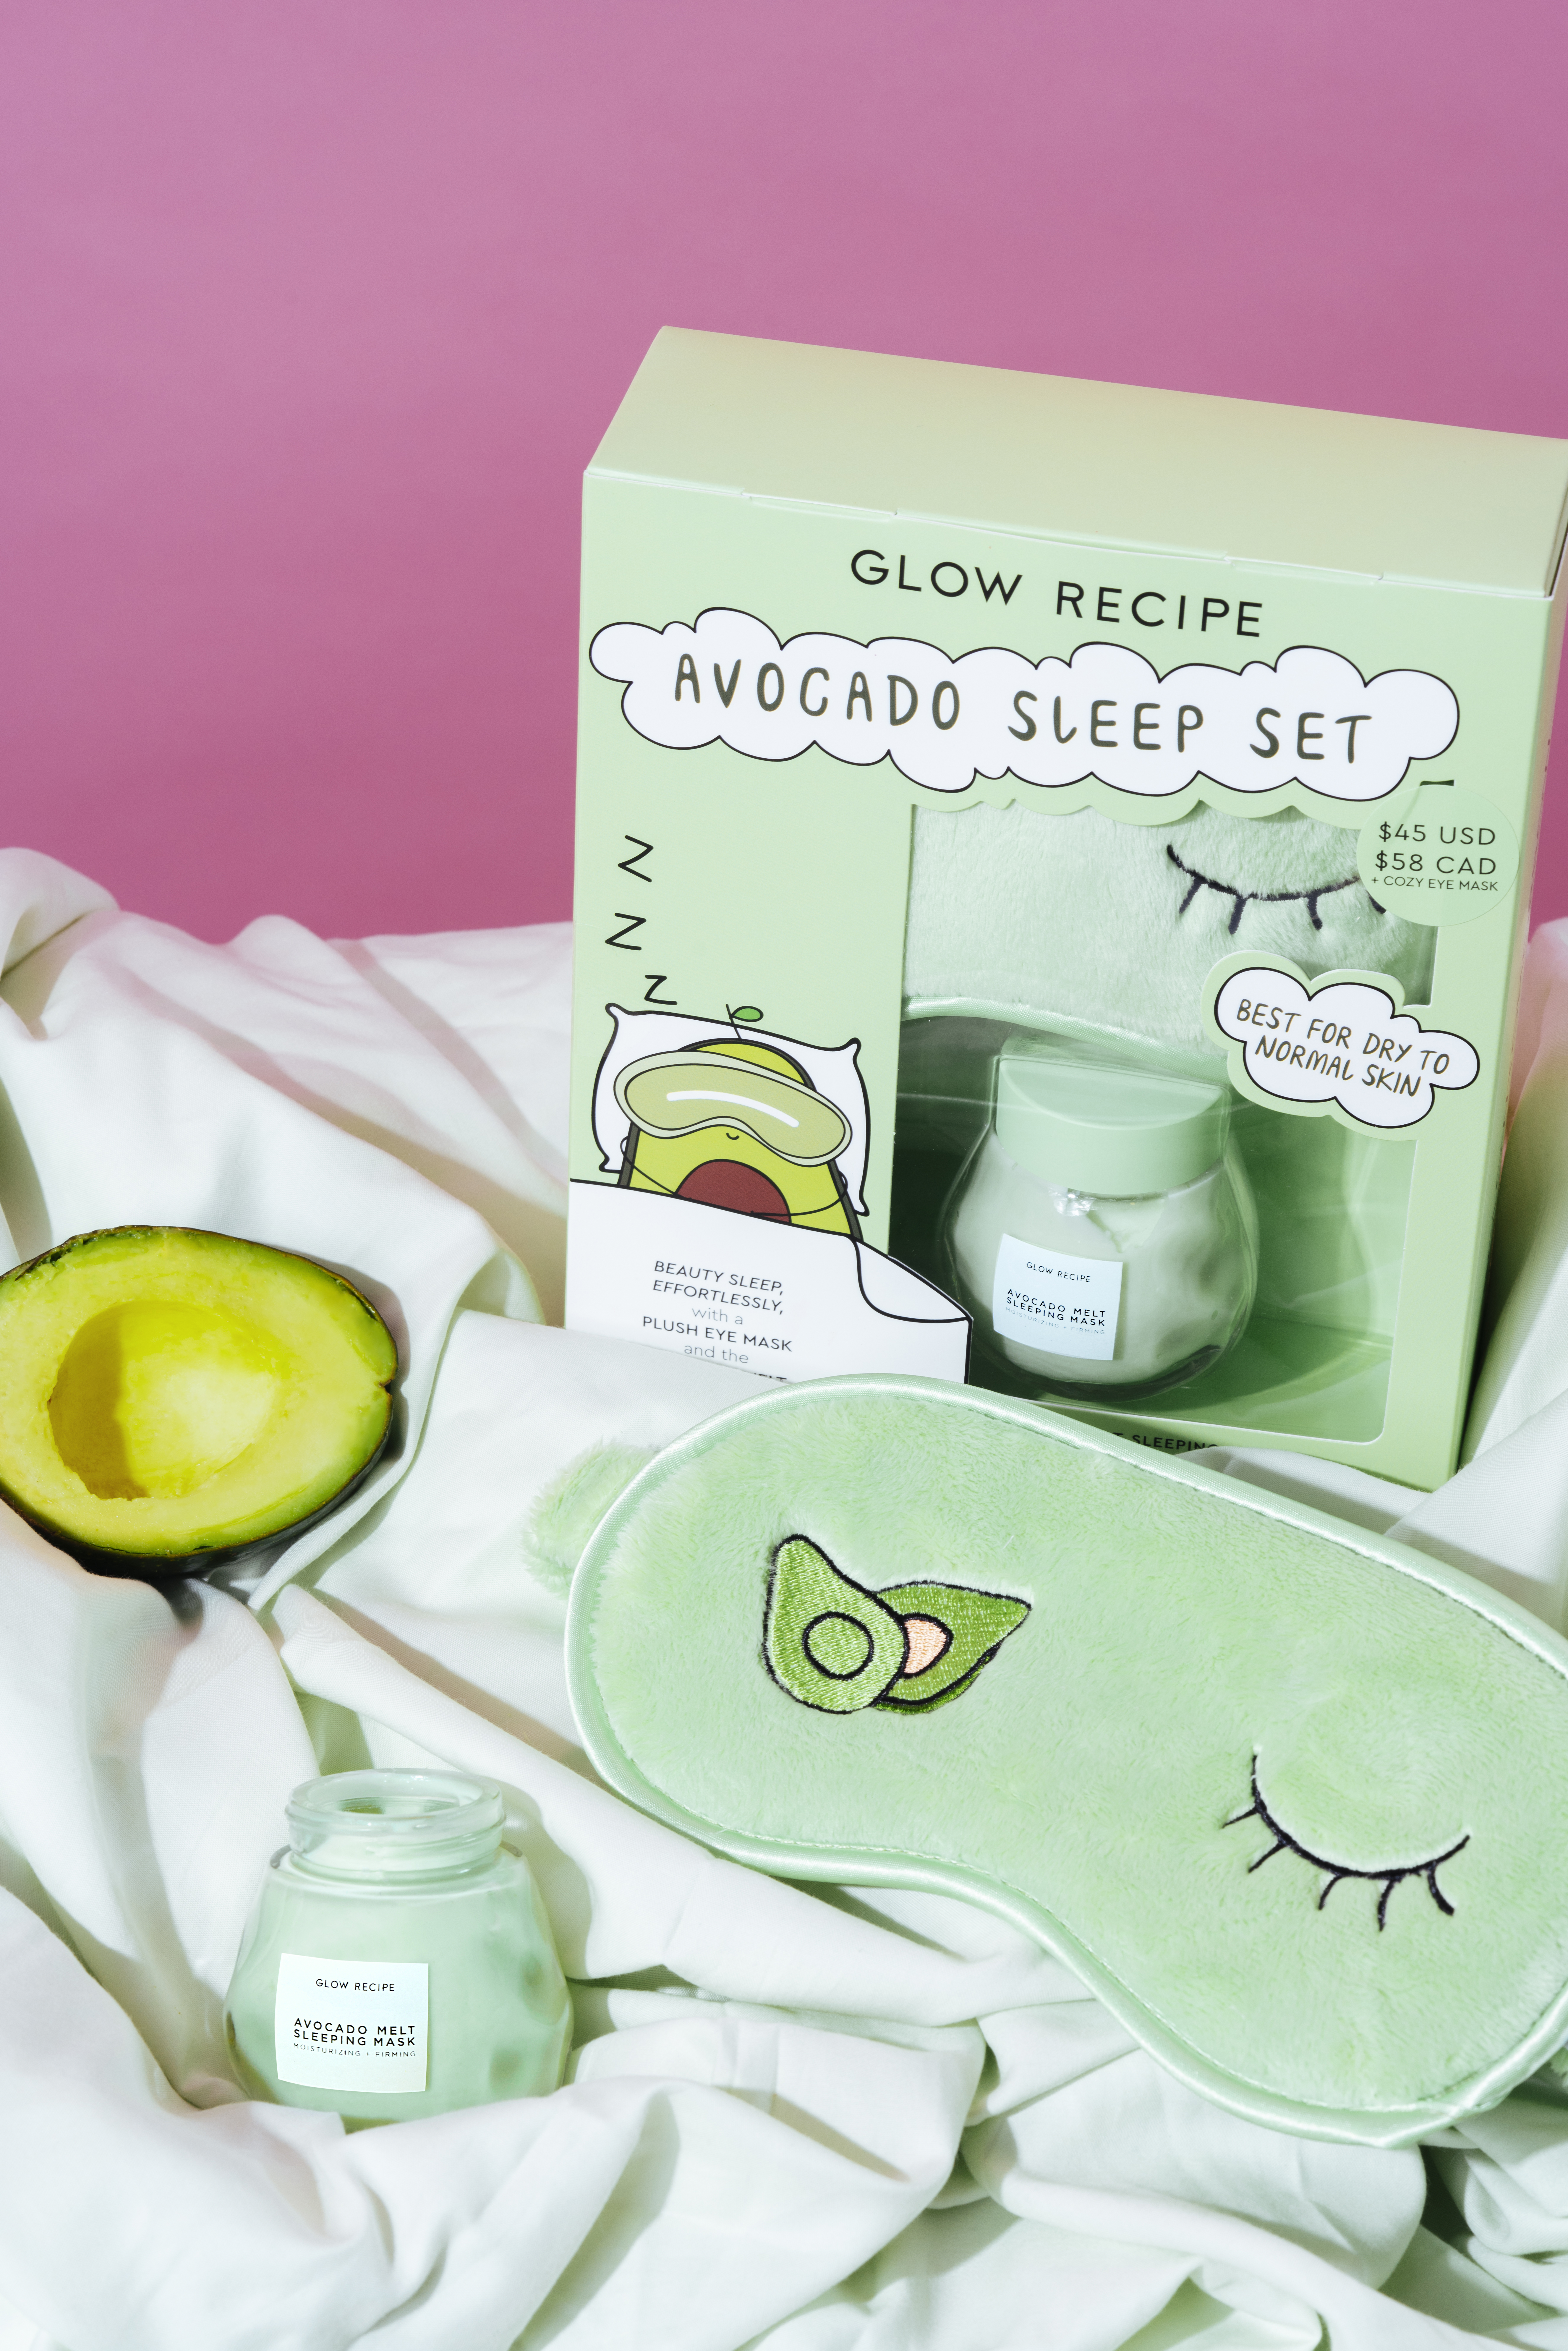 Avocado-Sleep-Set